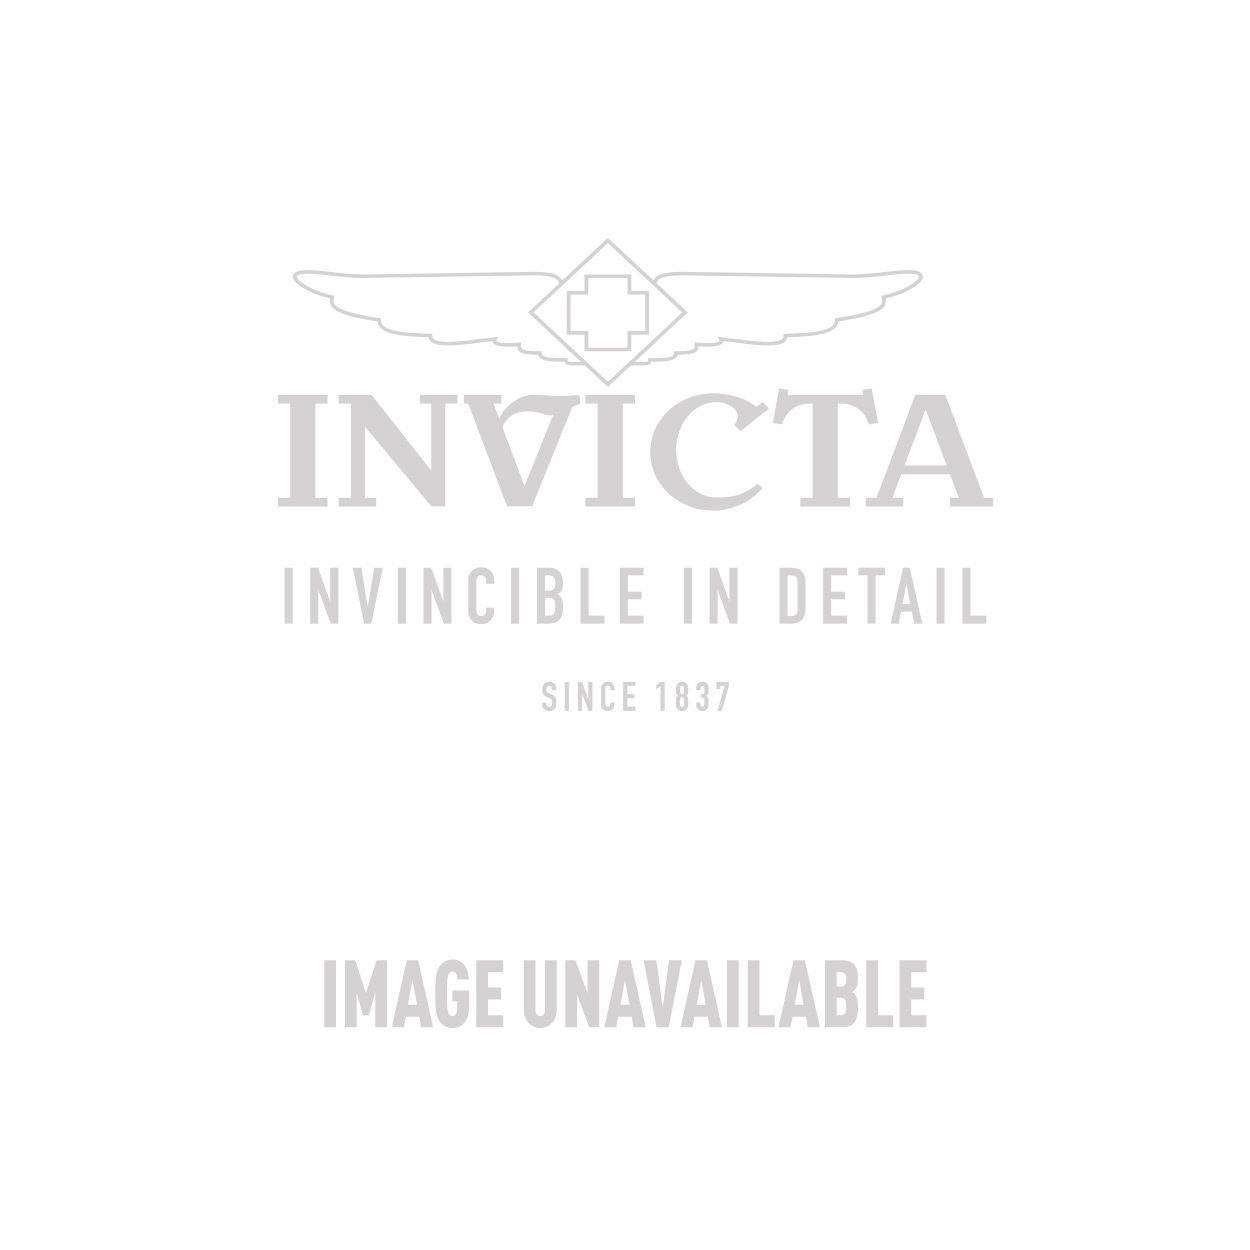 Invicta Bolt Mechanical Watch - Gold, Blue case with Gold tone Stainless Steel band - Model 17177